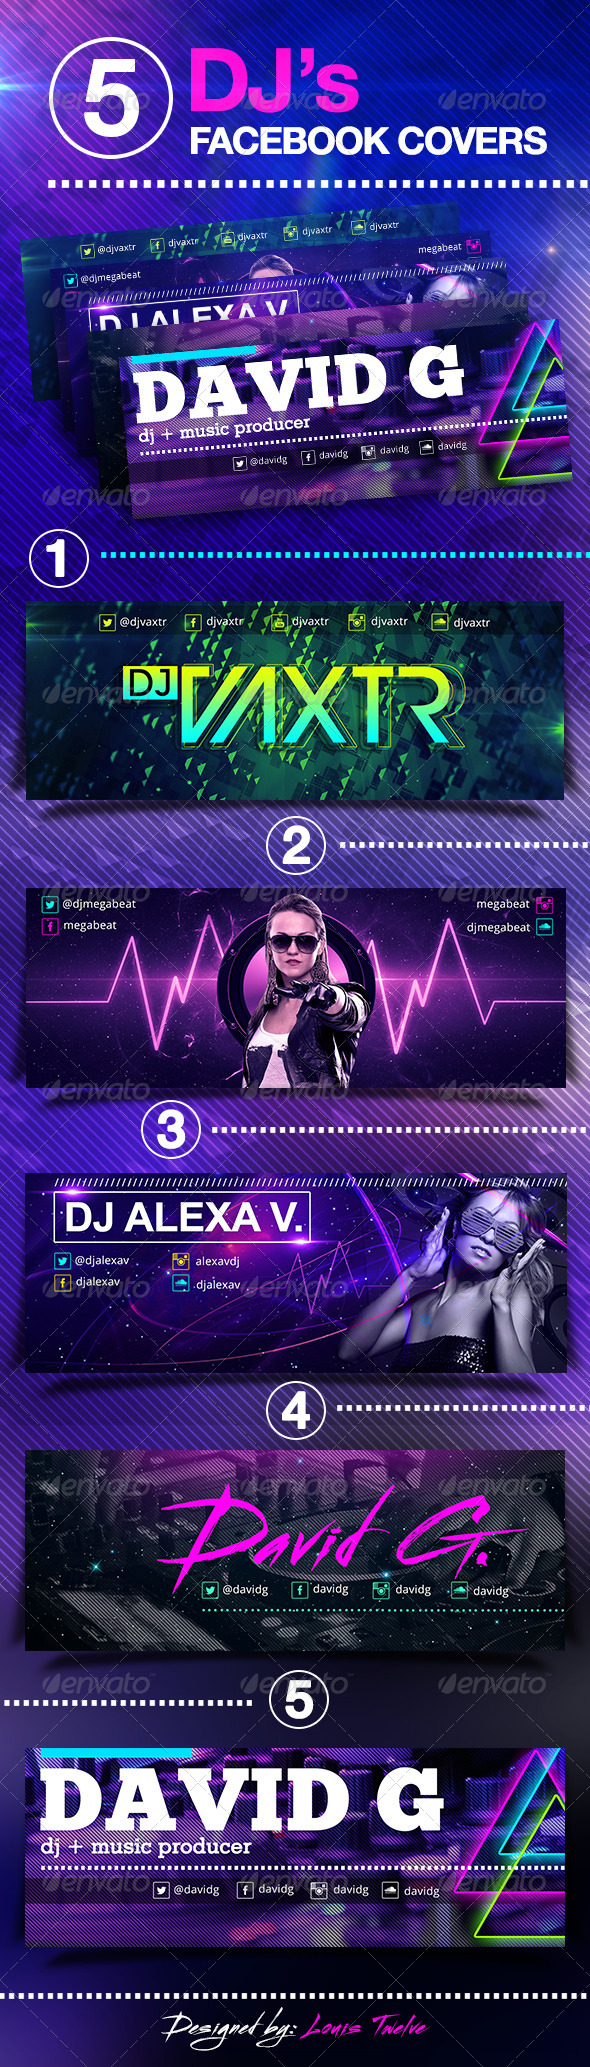 GraphicRiver 5 Dj s Facebook Covers 6675136